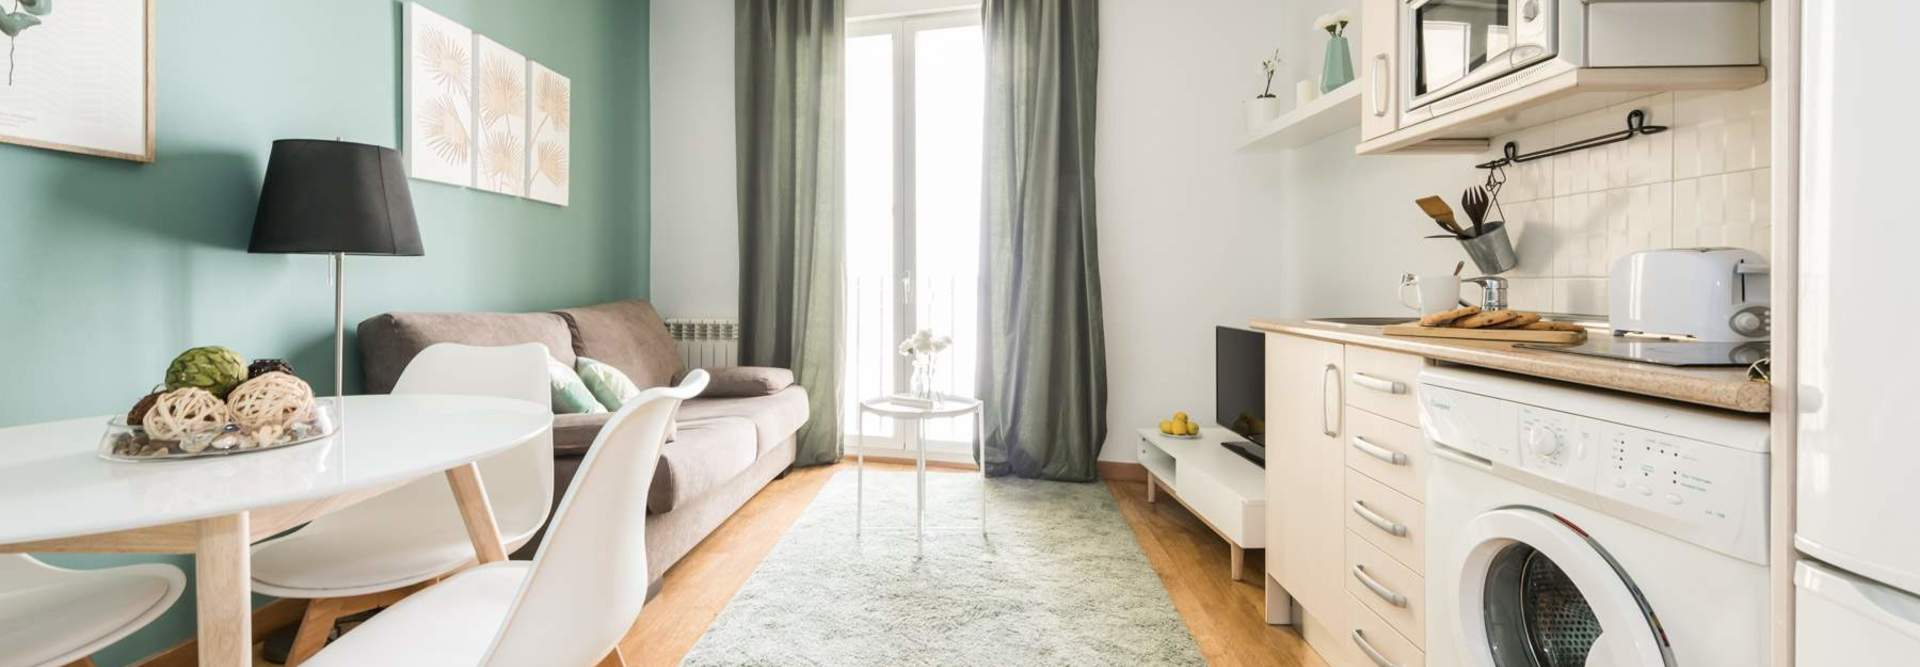 Home alquiler apartamento madrid centro mad4rent  13